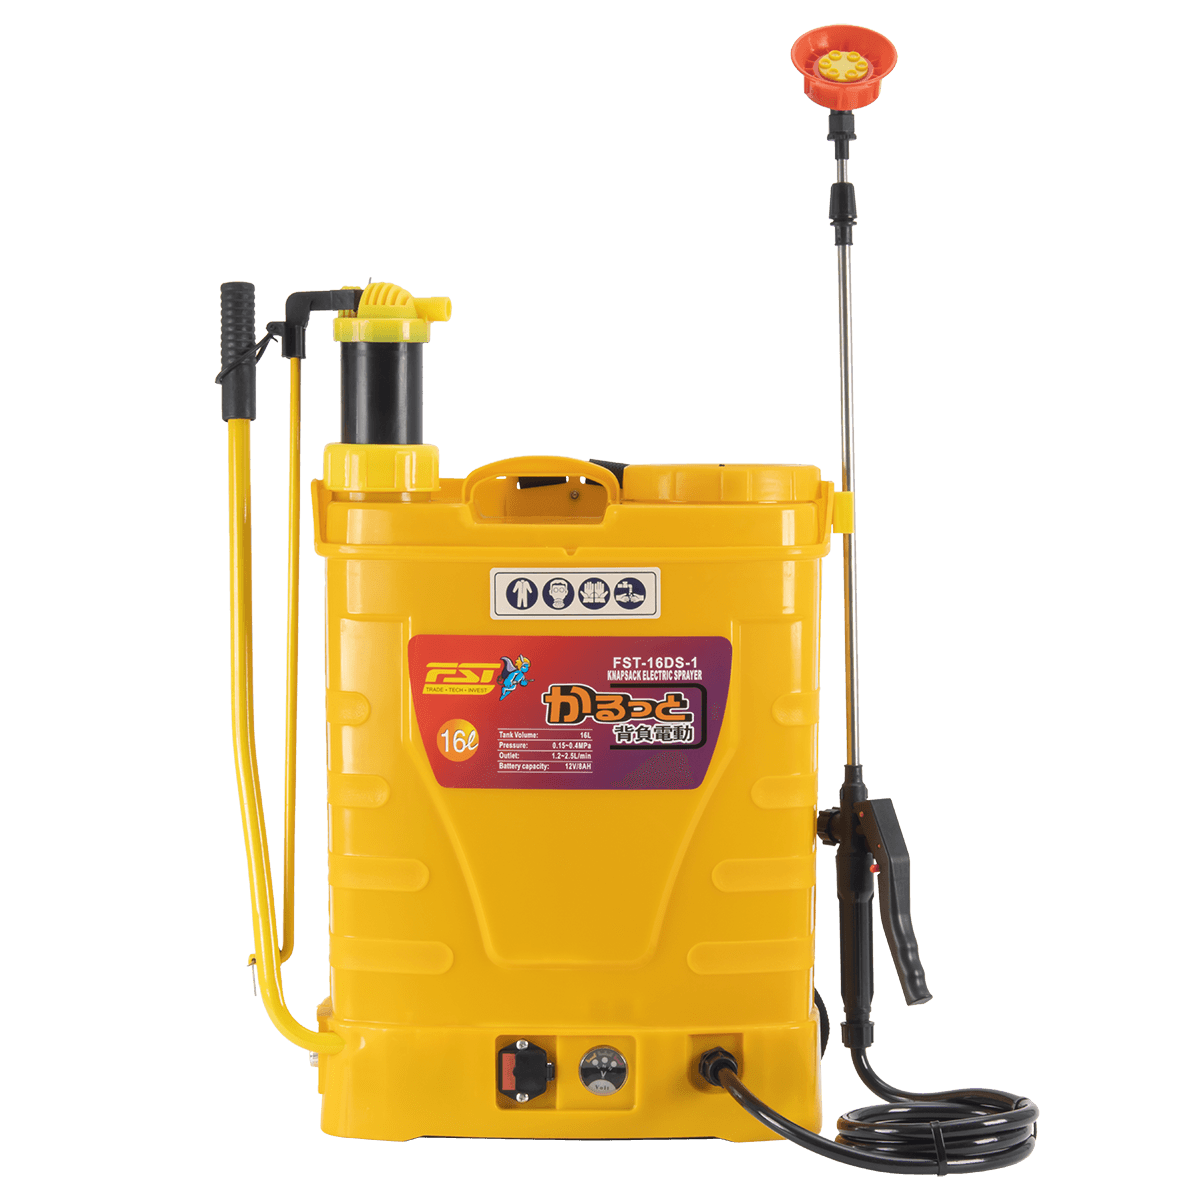 FST-16DS-1 Knapsack Electric Sprayer